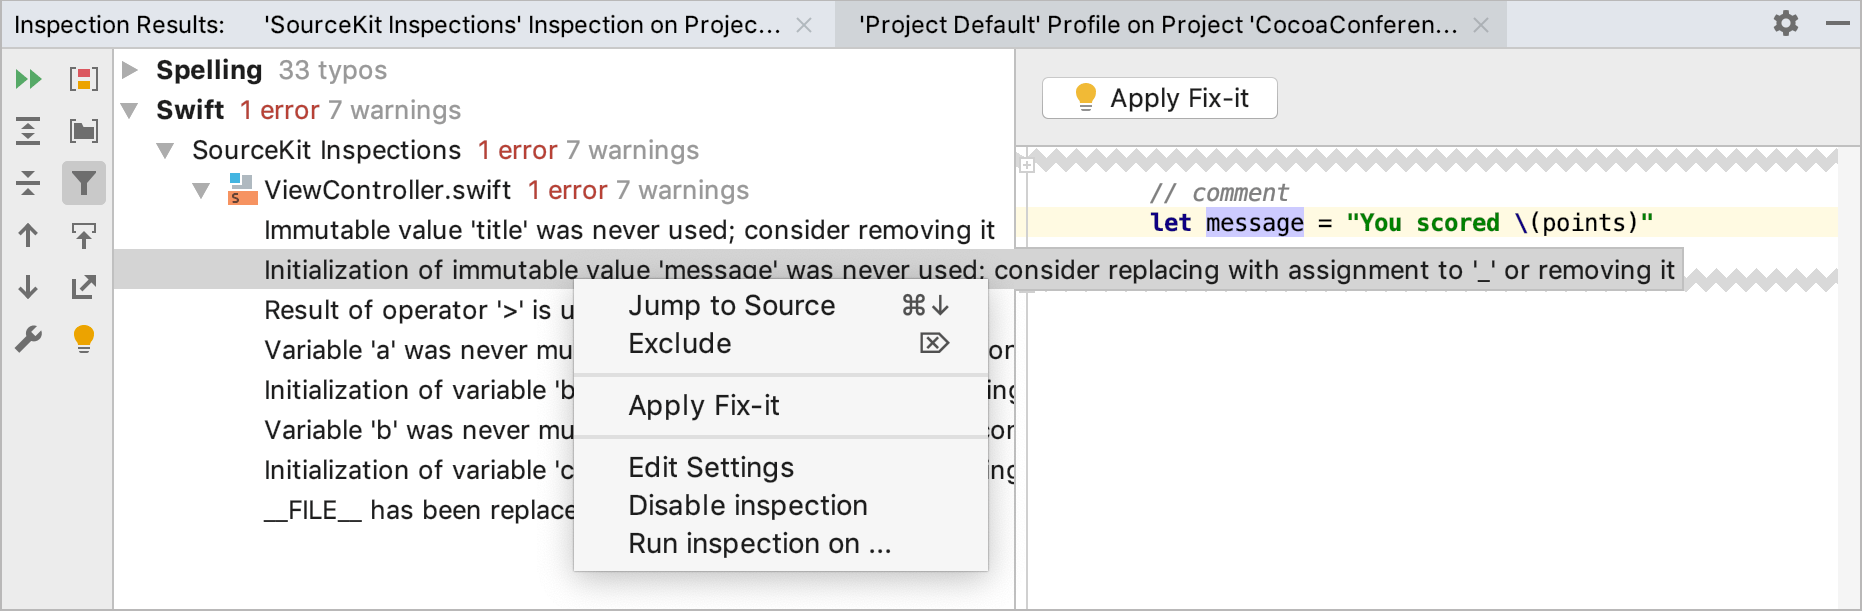 Inspection results tool window